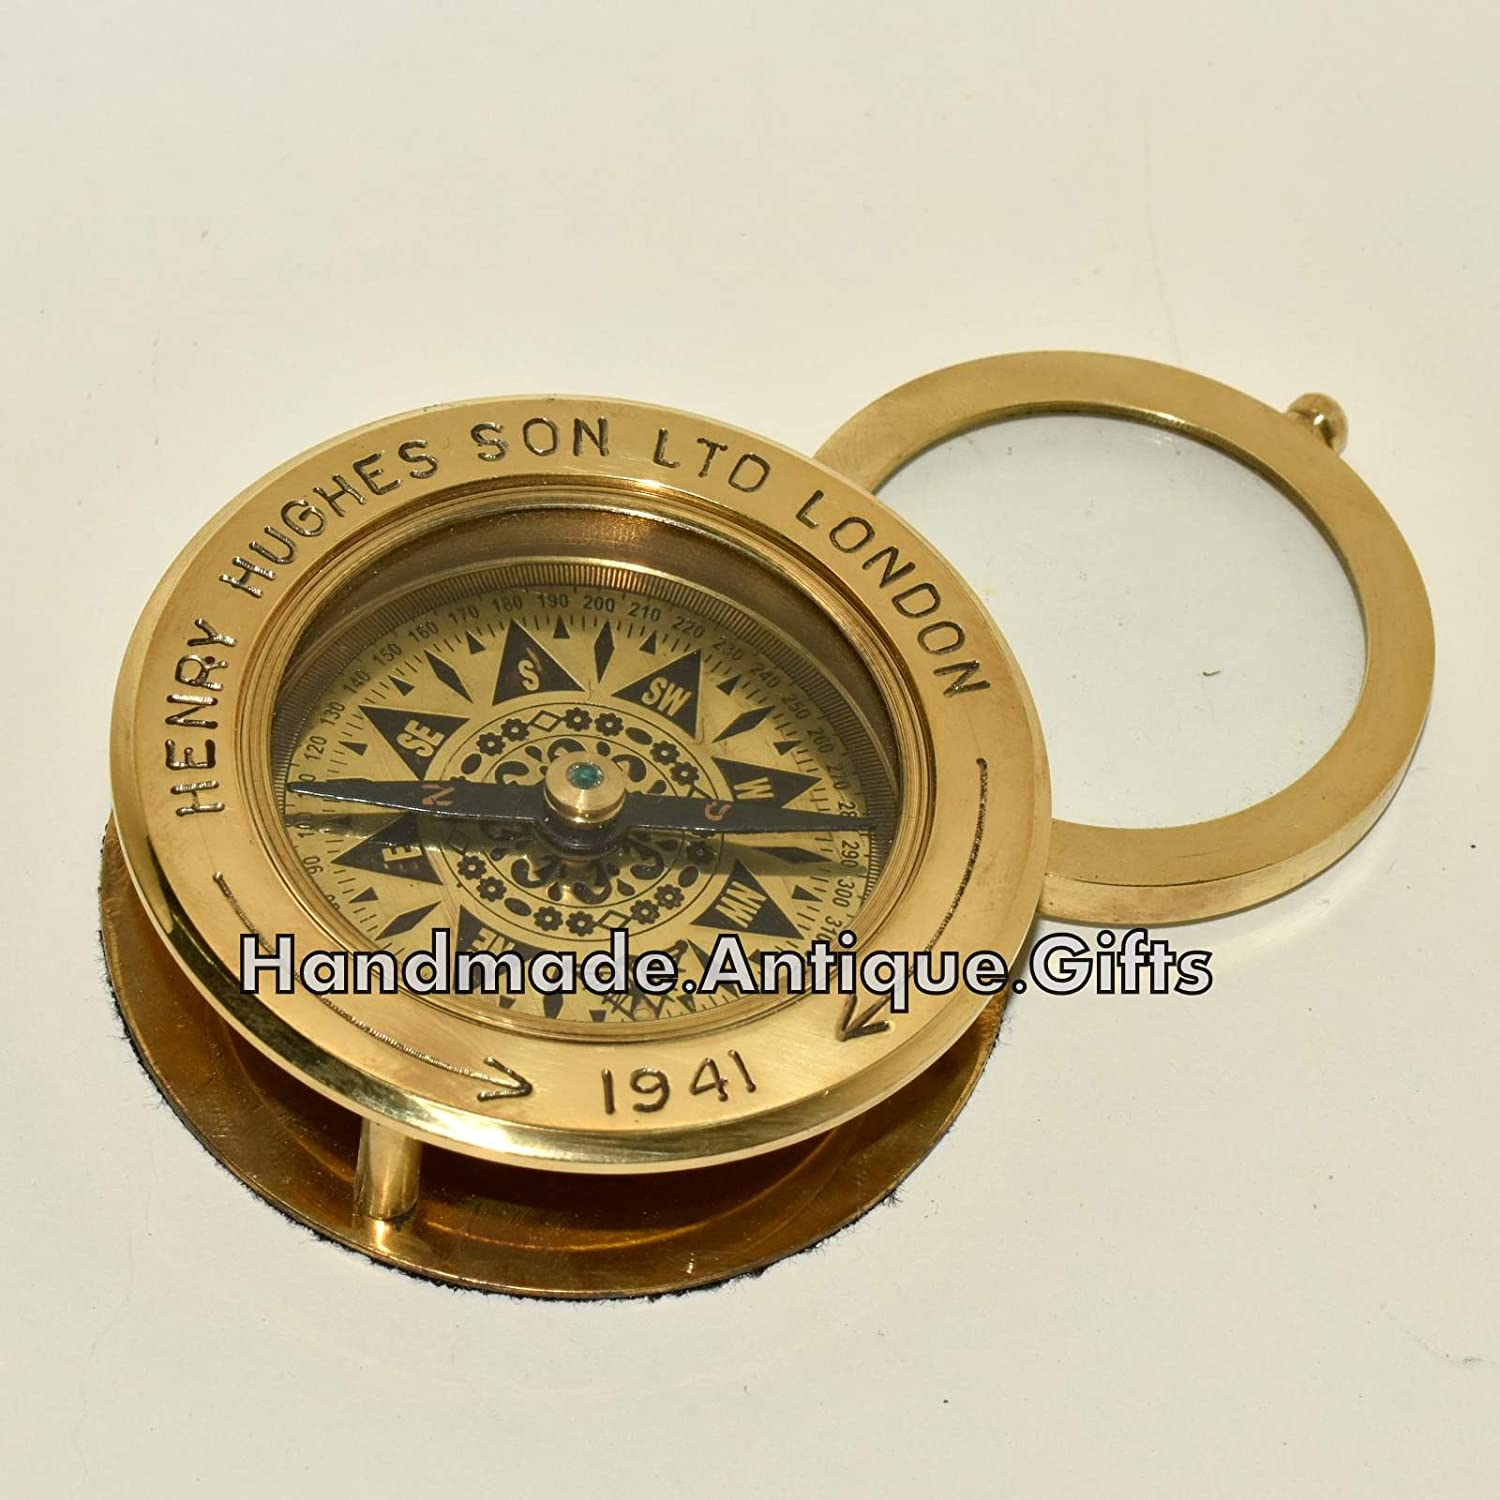 antique-nautical-brass-compass-flip-out-magnifying-glass-vintage-table-top-decor B0749HBVDP